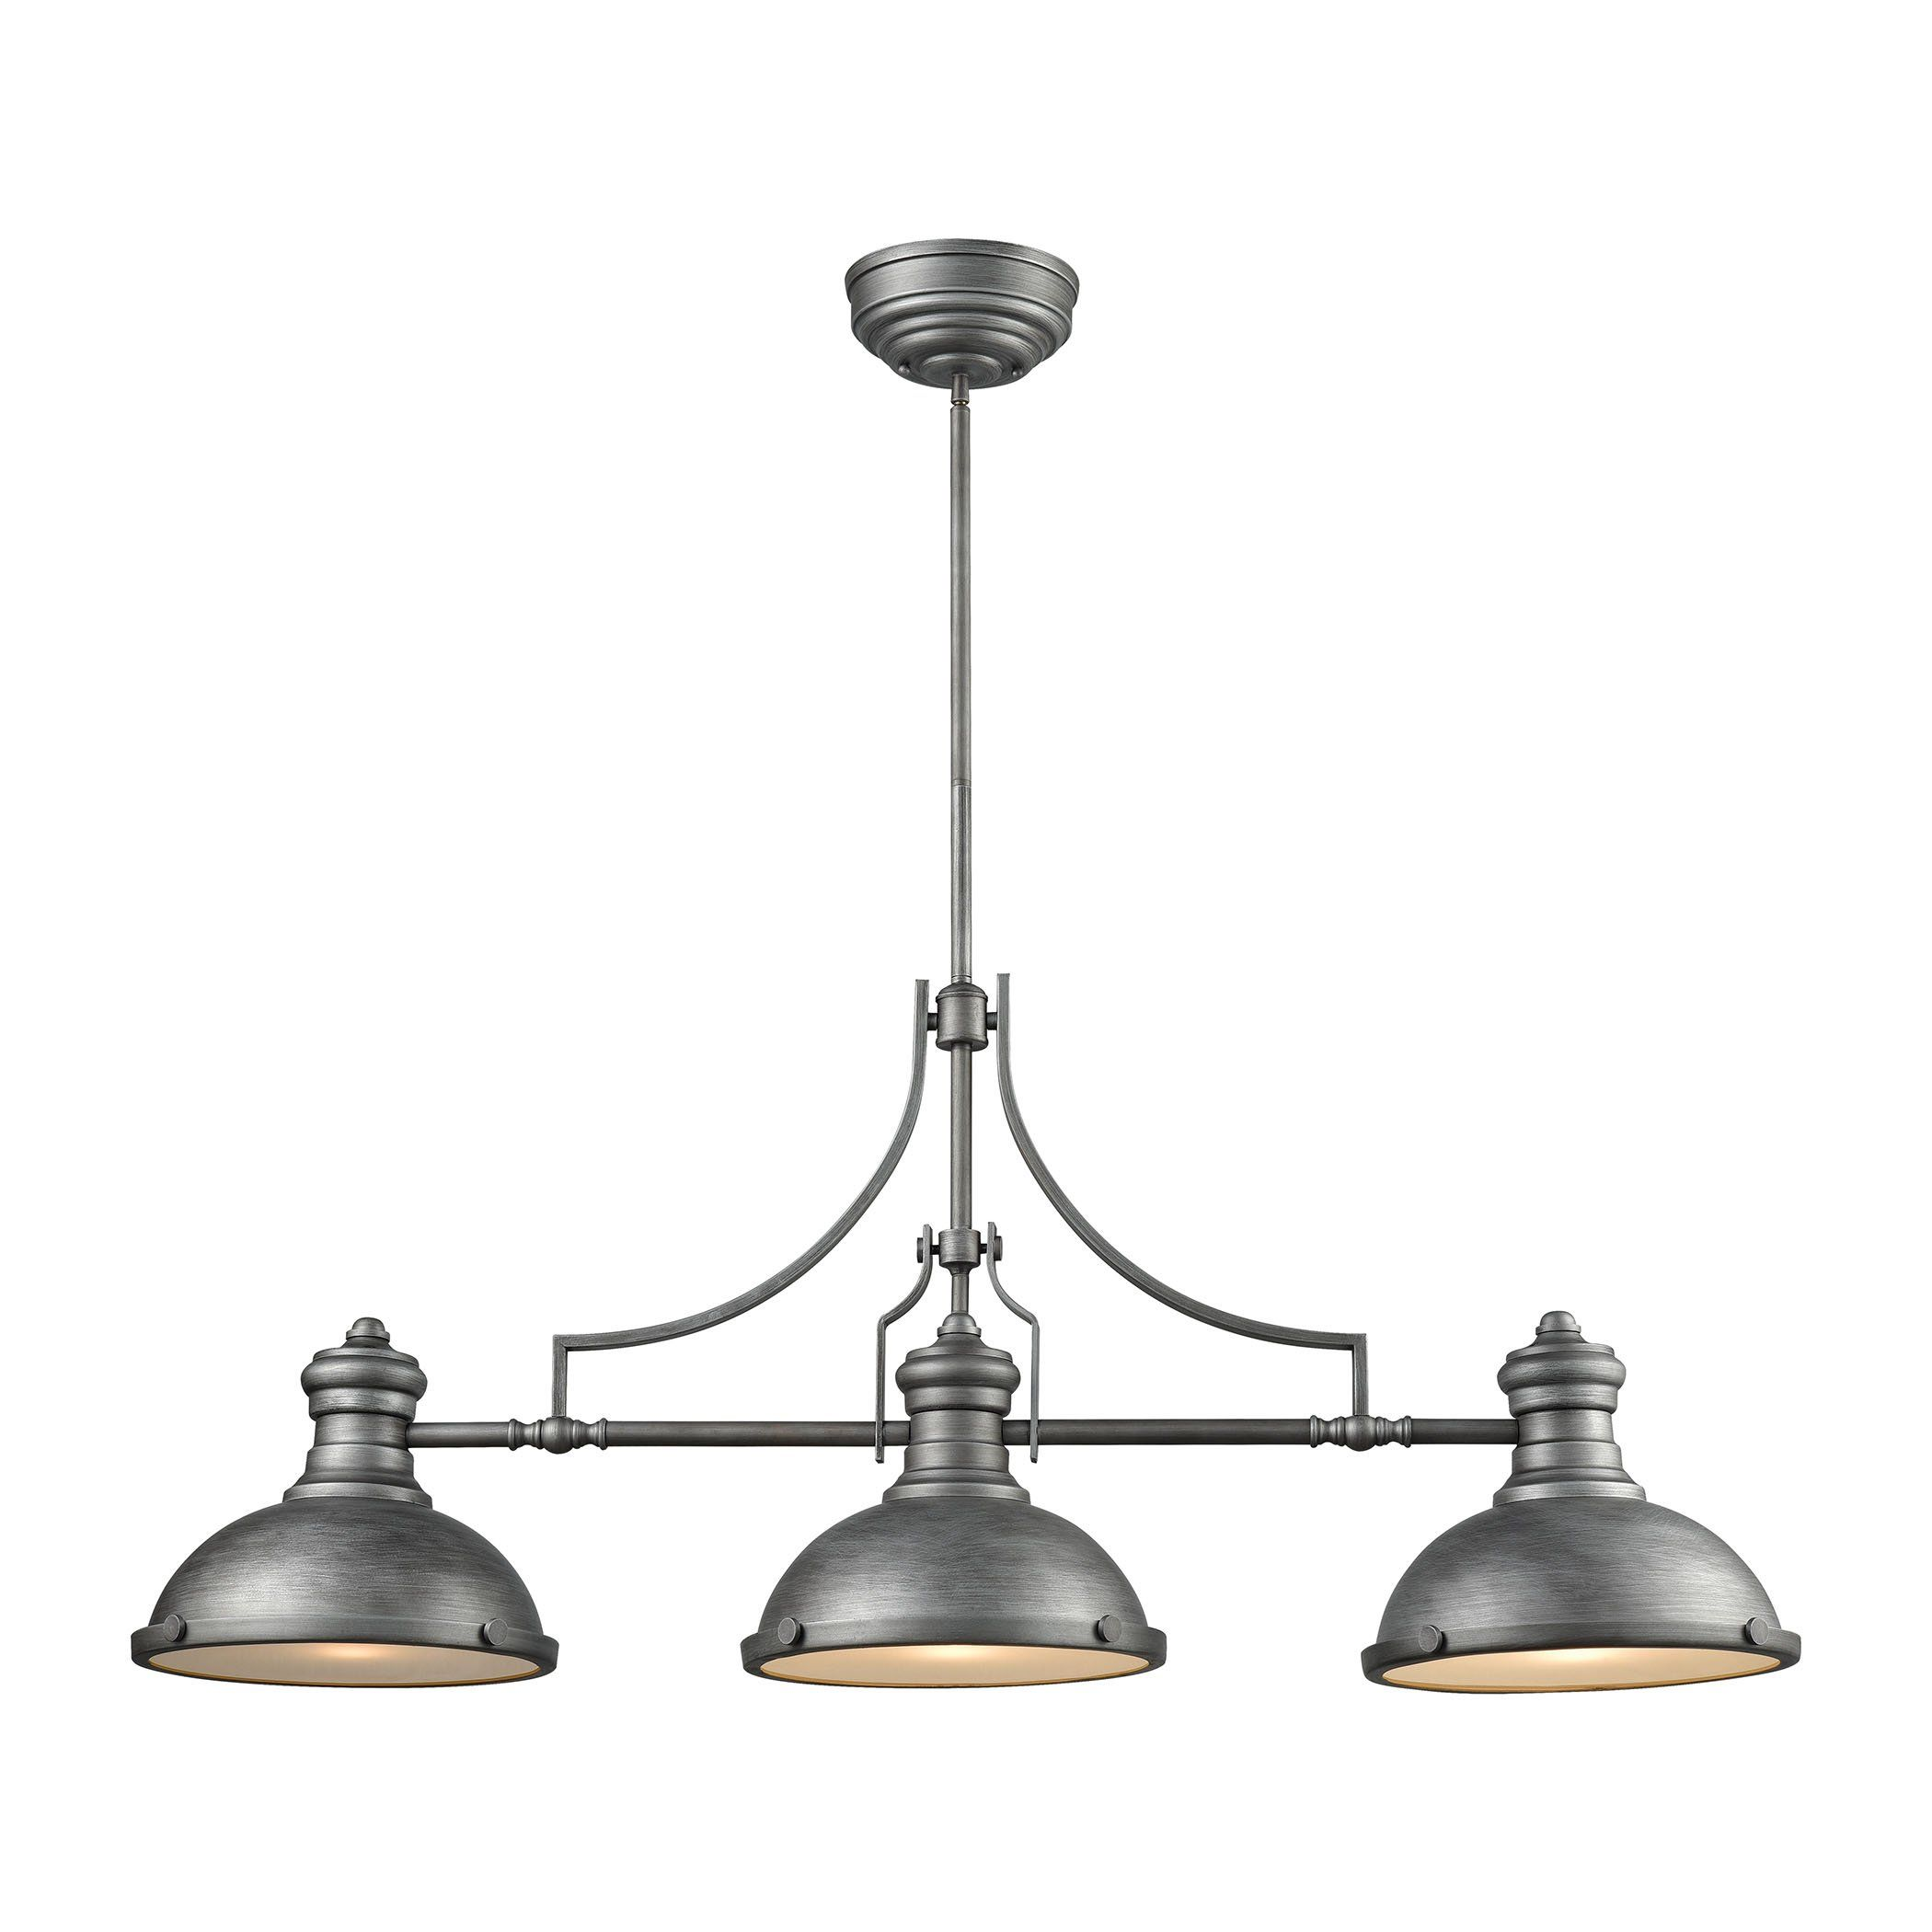 Chadwick light island in weathered zinc with frosted glass